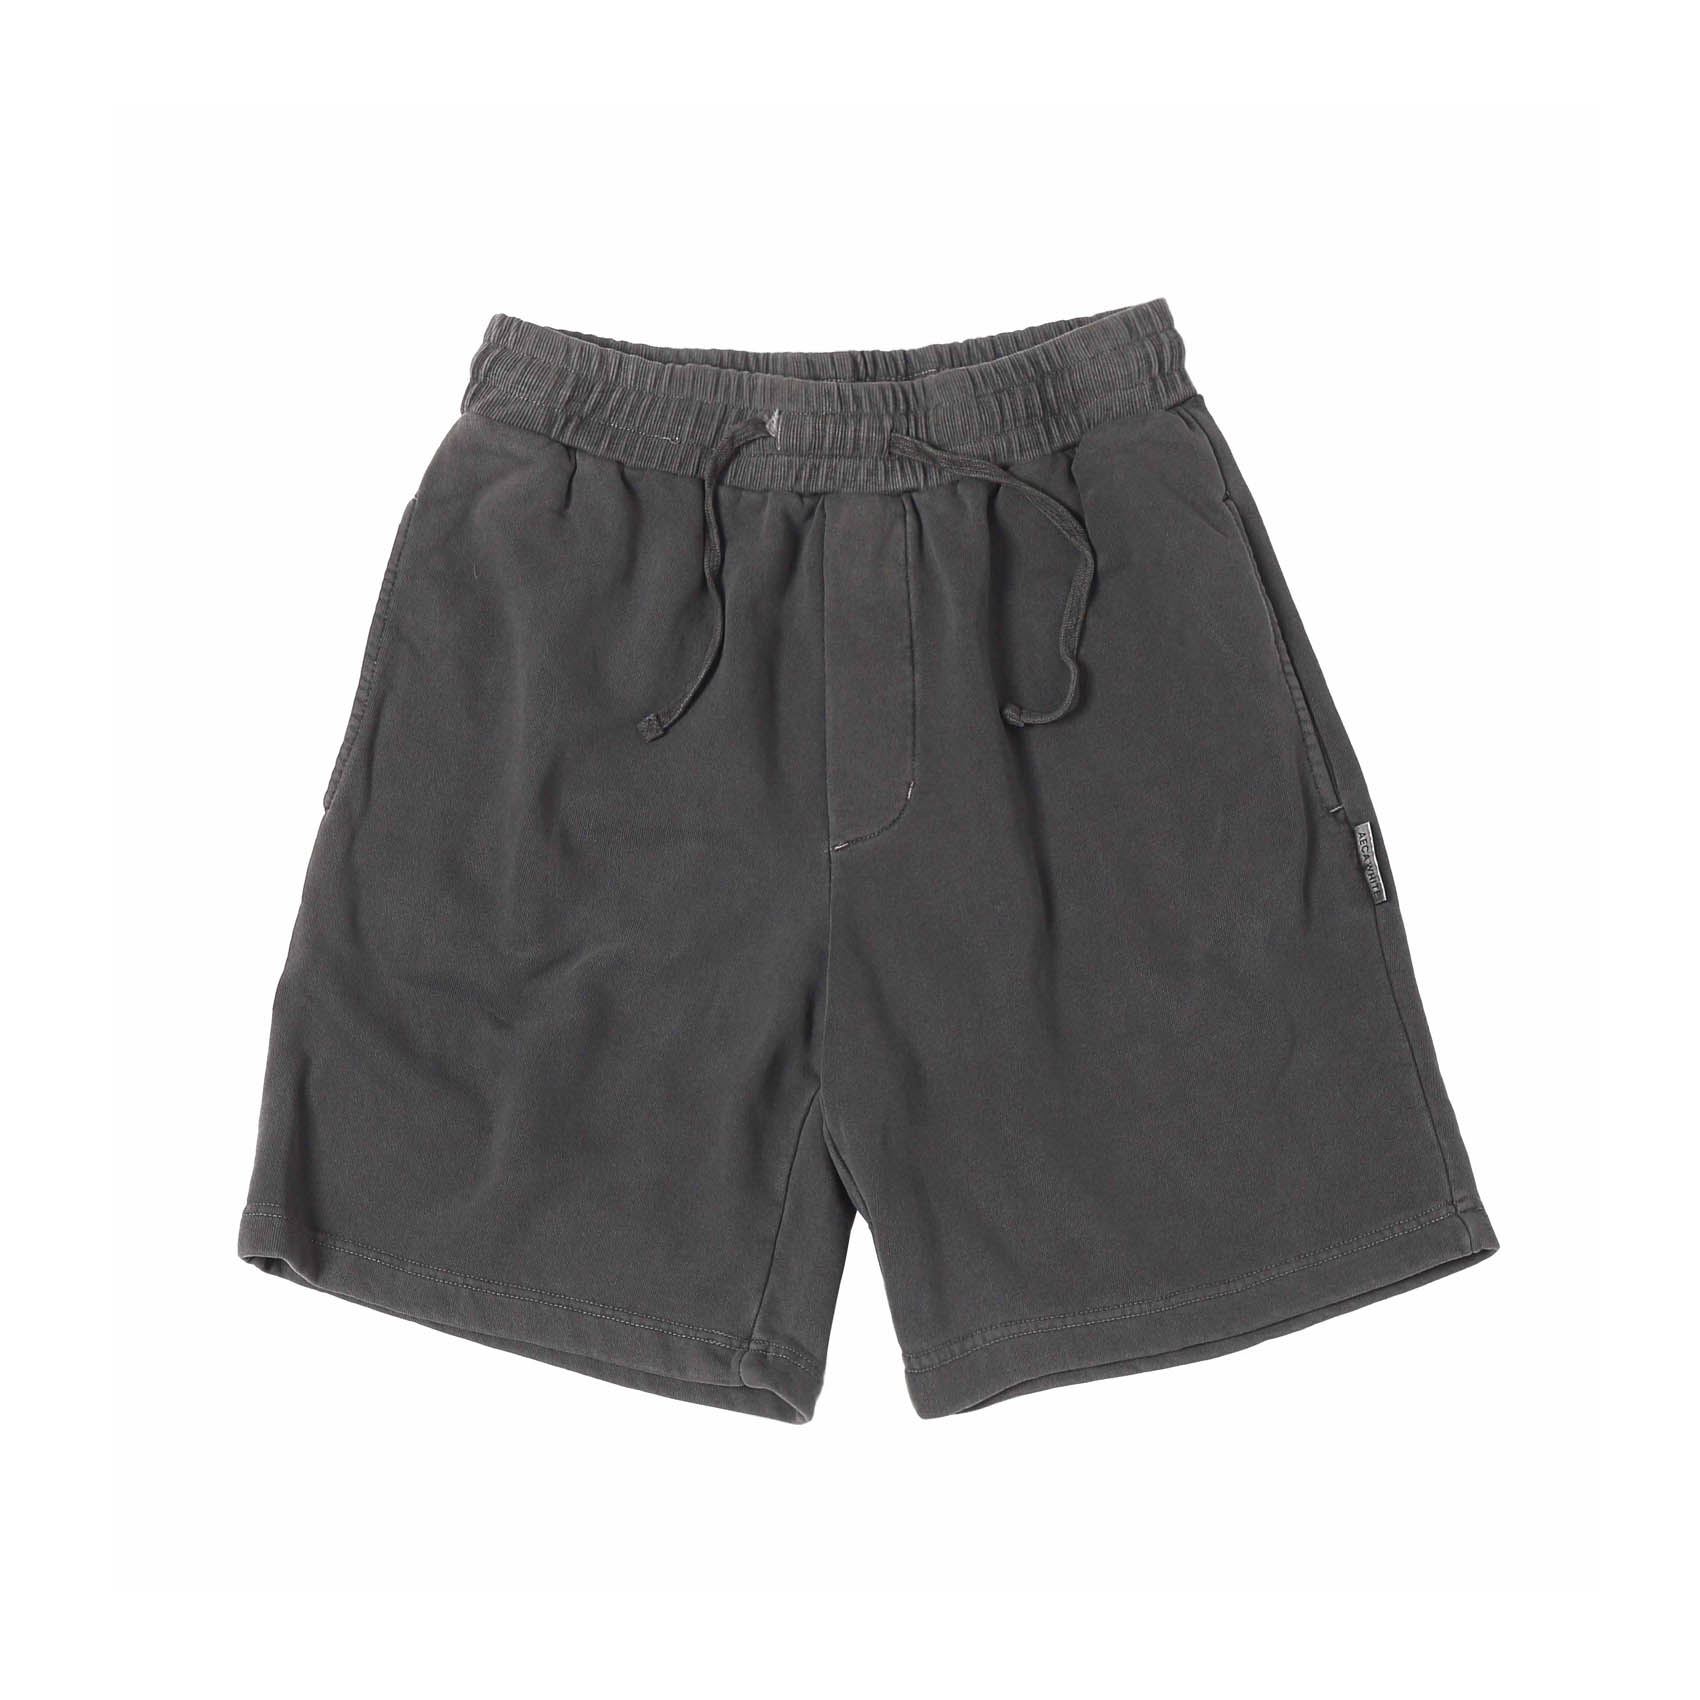 FINEST COTTON SHORTS - WASHED CHARCOAL